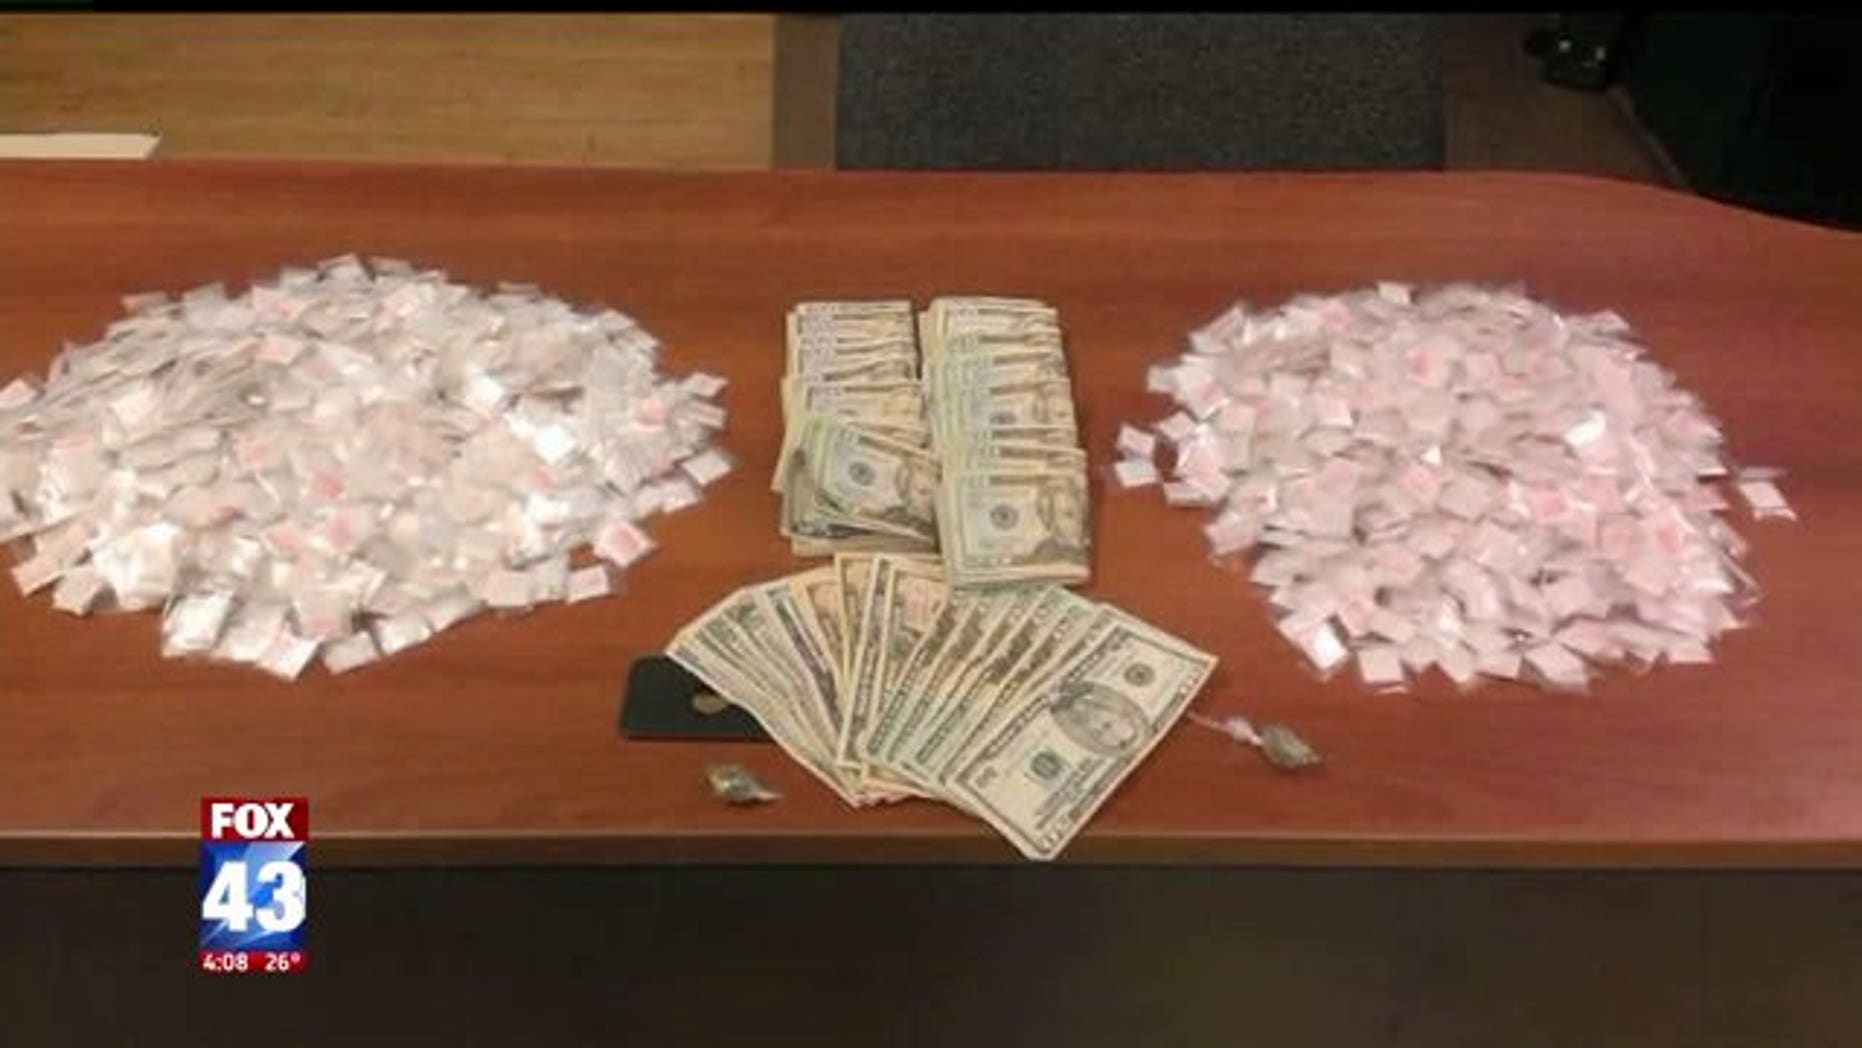 The Pennsylvania State Police today announced that troopers seized $13,755,803 worth of heroin, cocaine and other illegal drugs in the first three months of 2017.